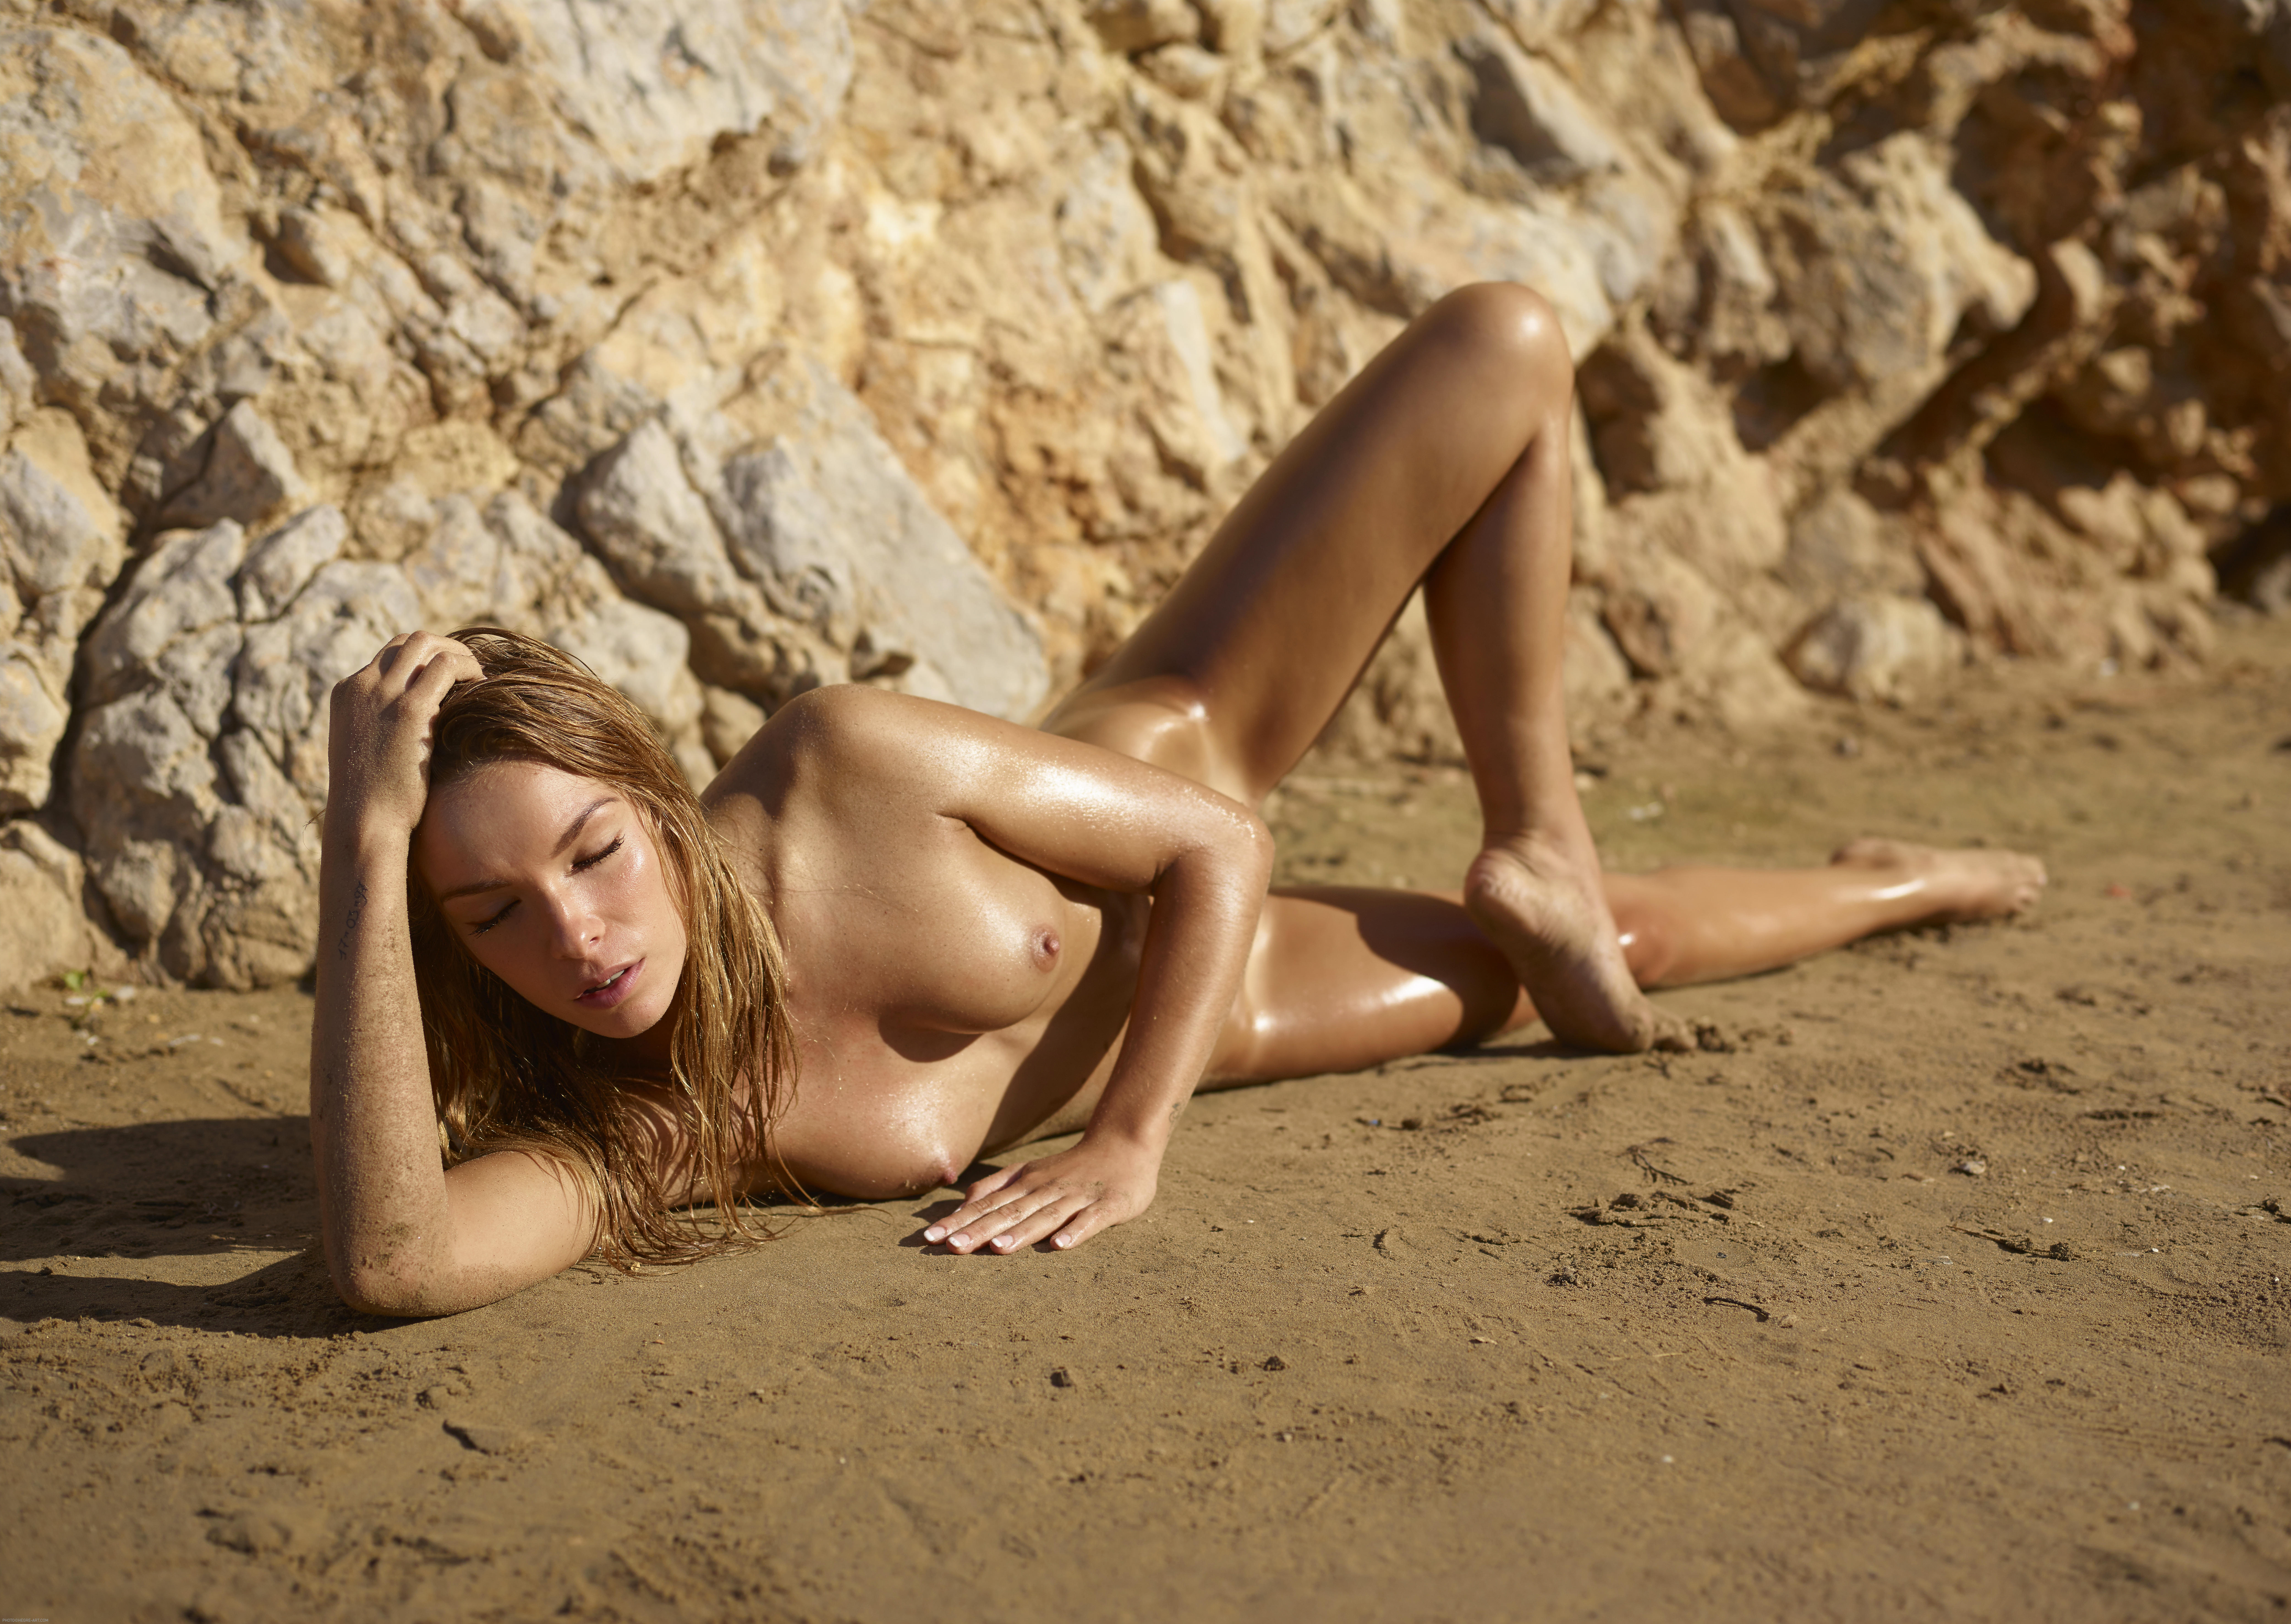 Oily naked ladies on beach that necessary